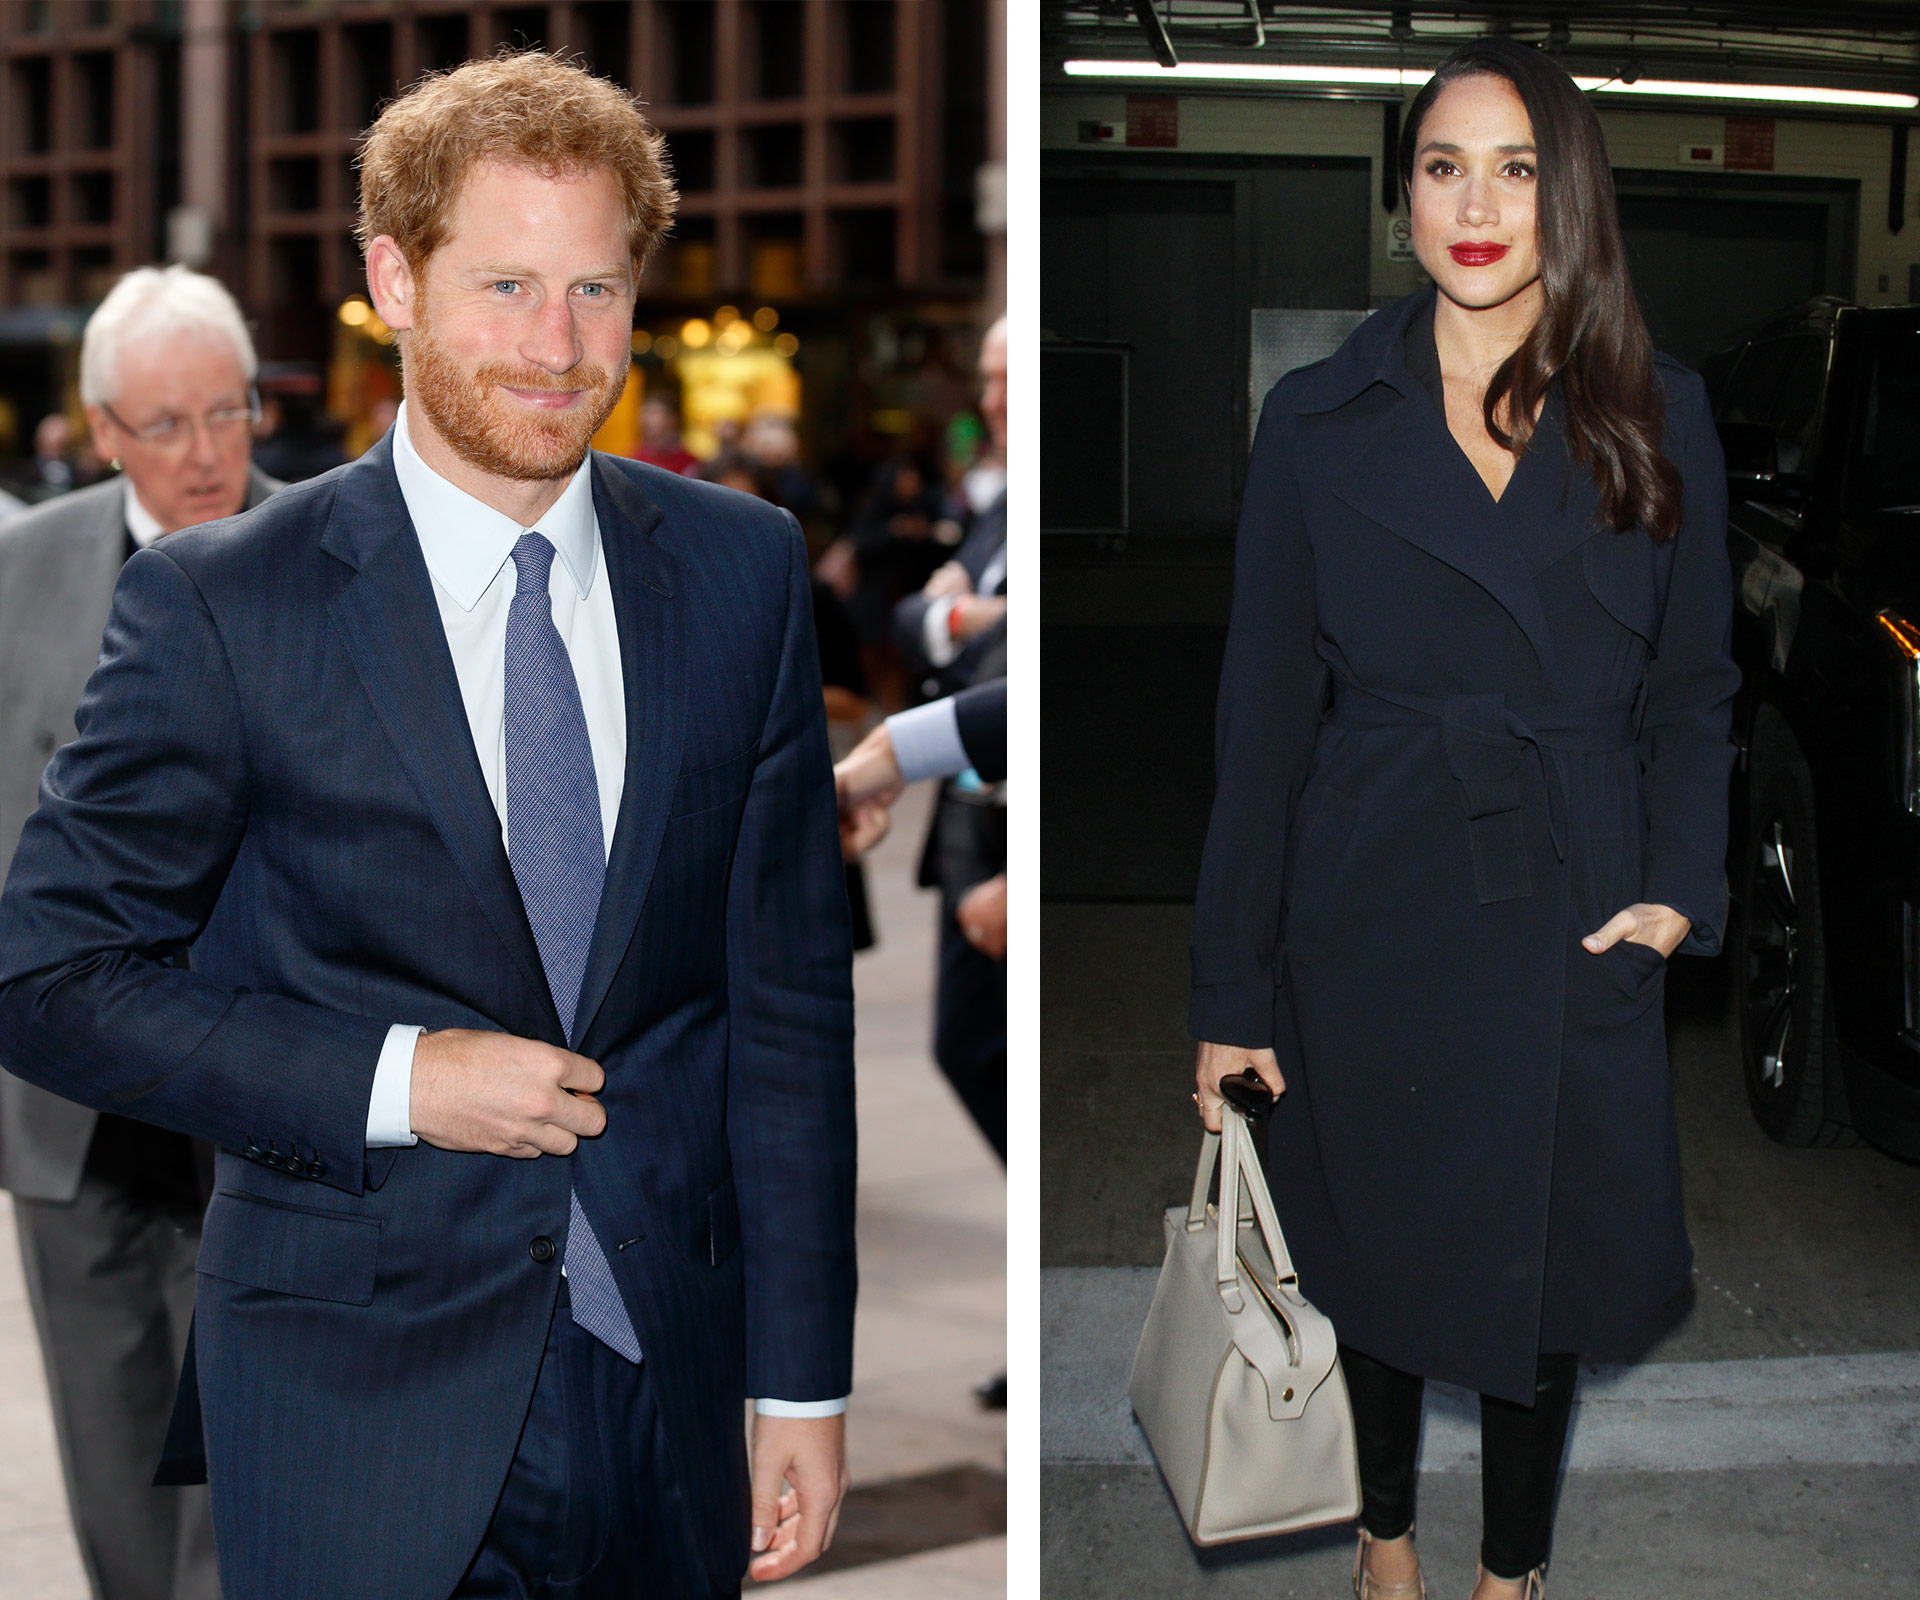 http://d3lp4xedbqa8a5.cloudfront.net/s3/digital-cougar-assets/WomansDay/2016/12/15/17367/Prince-harry-and-Meghan-Markle-main.jpg